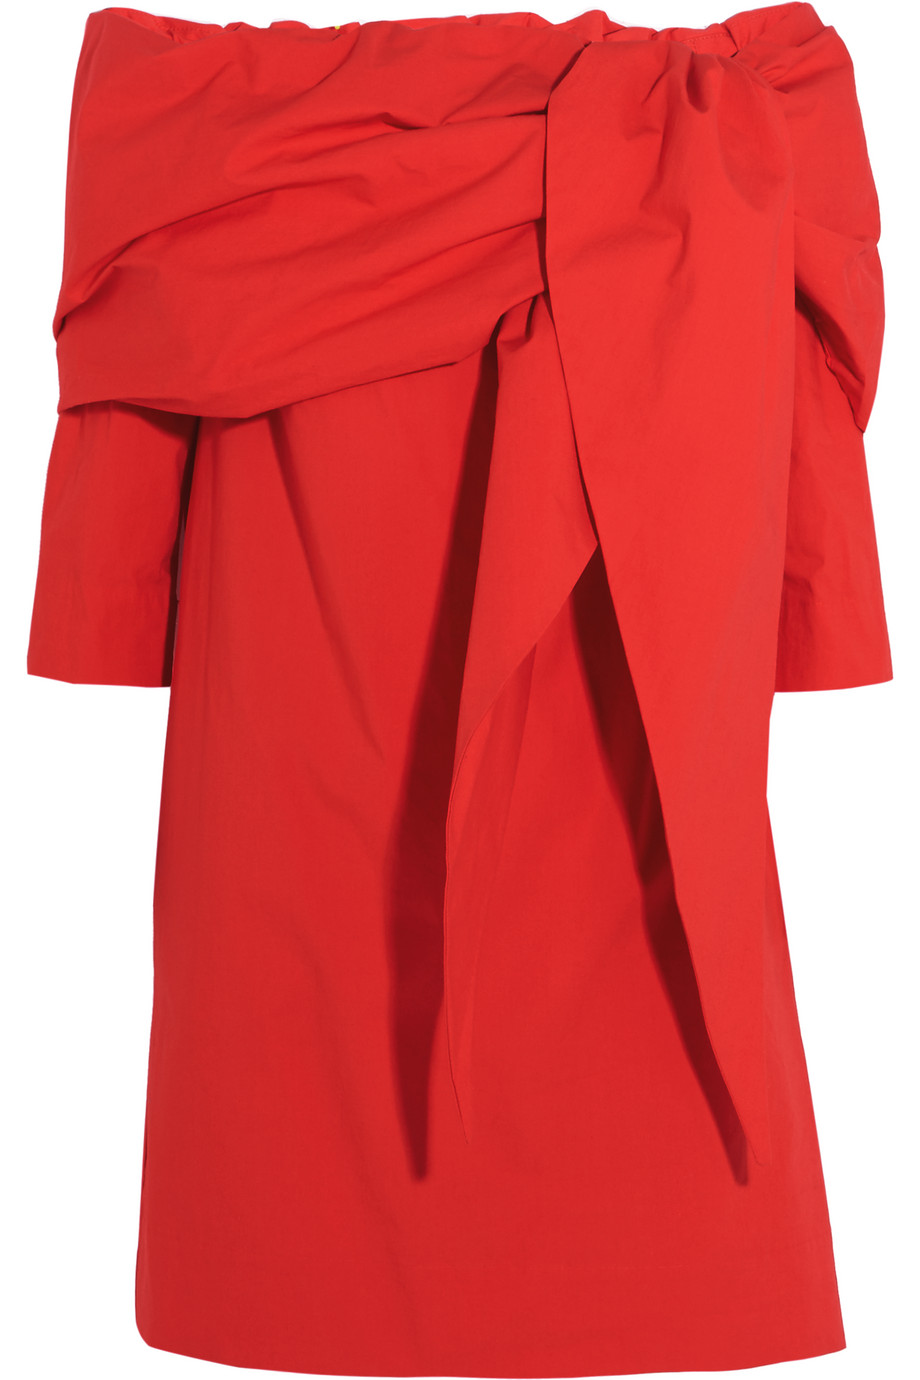 Isa Arfen Off-the-Shoulder Stretch-Cotton Mini Dress, Red, Women's, Size: 6